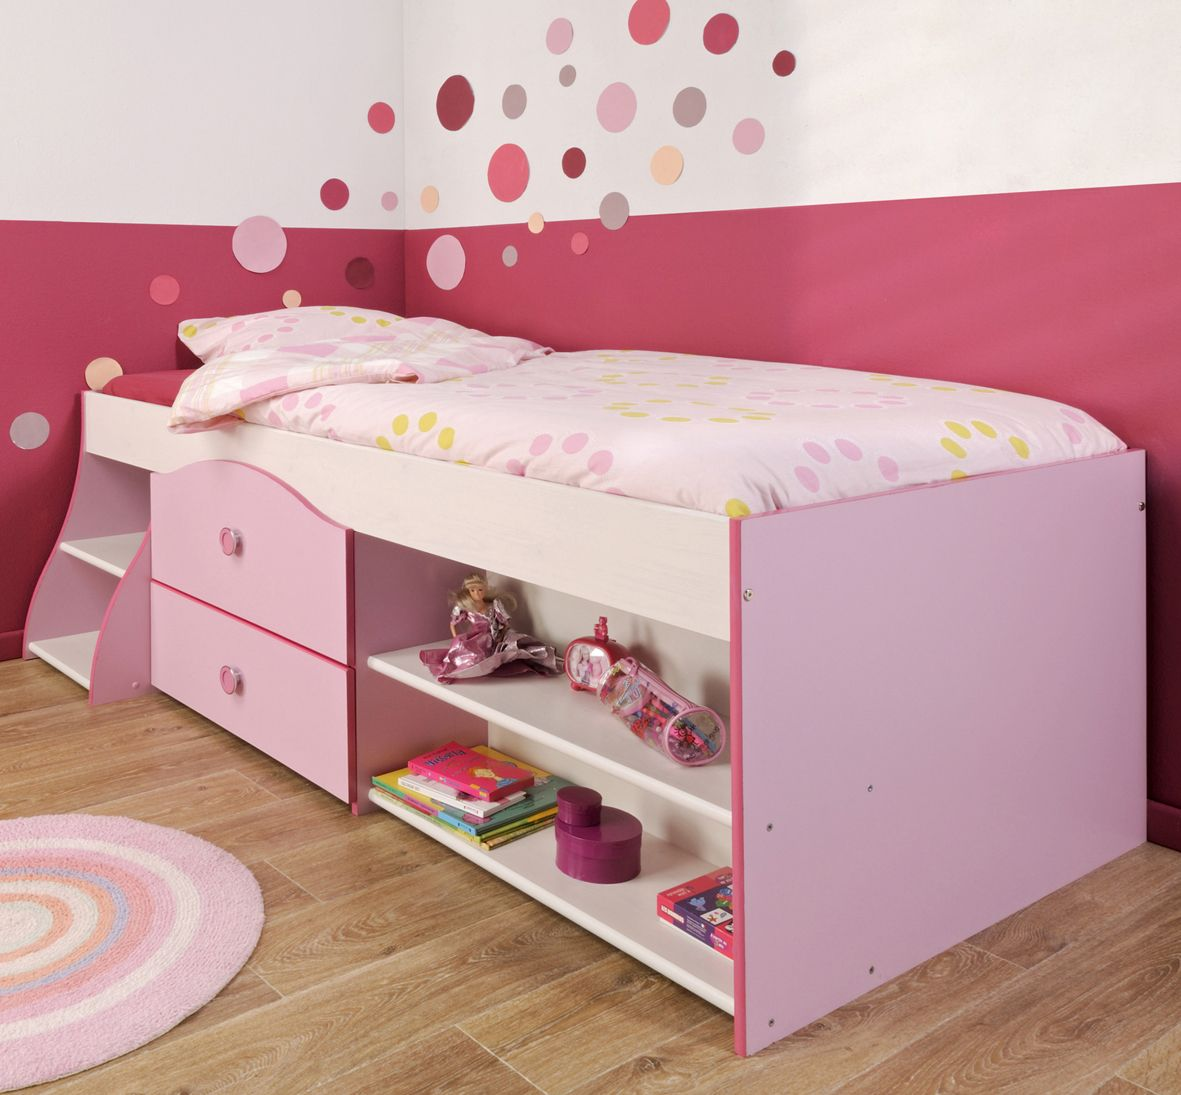 Kids Bedroom Furniture Stores: 14 Lovable And Cute Kids Bed Designs You Must Have